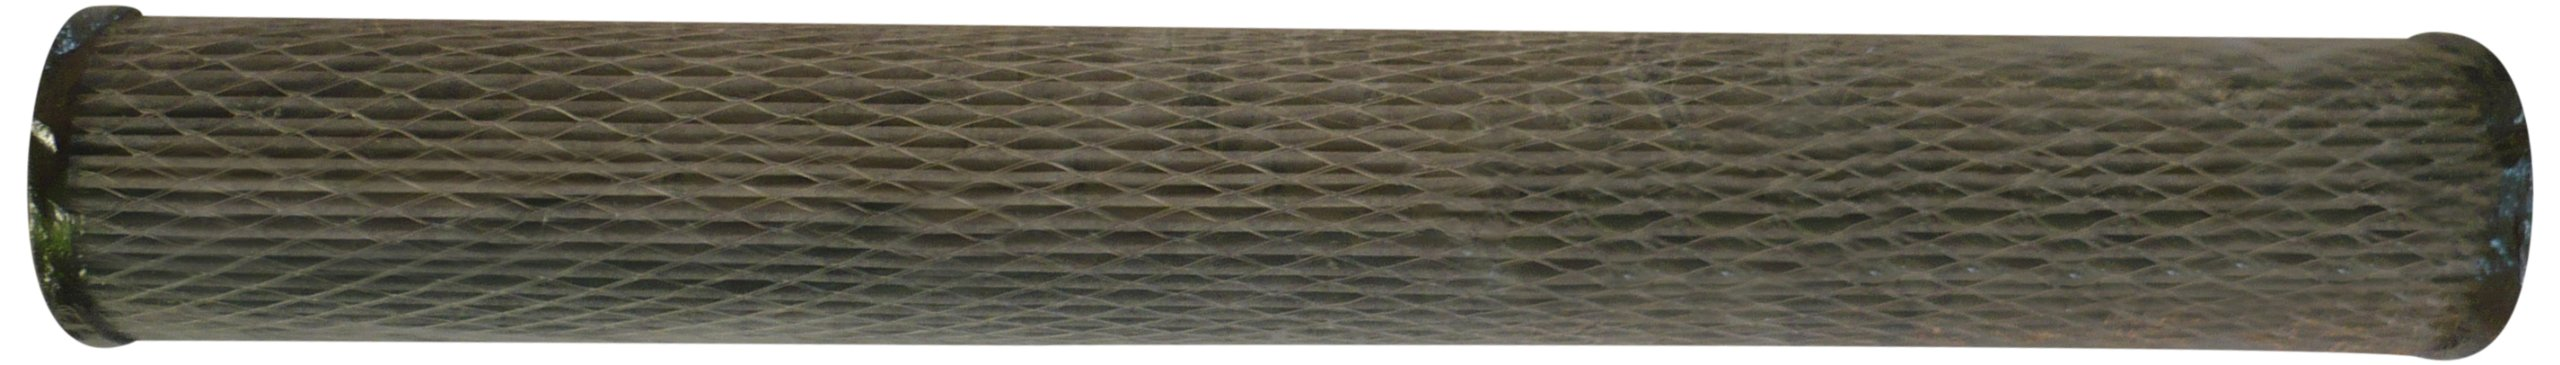 Genesis Water Technologies PS2.5-20-C Advanced Nano-Carbon Replacement Filter Cartridge Utilizing a Unique Advanced Proprietary Nano-Technology 20-Inch X 2.5-Inch